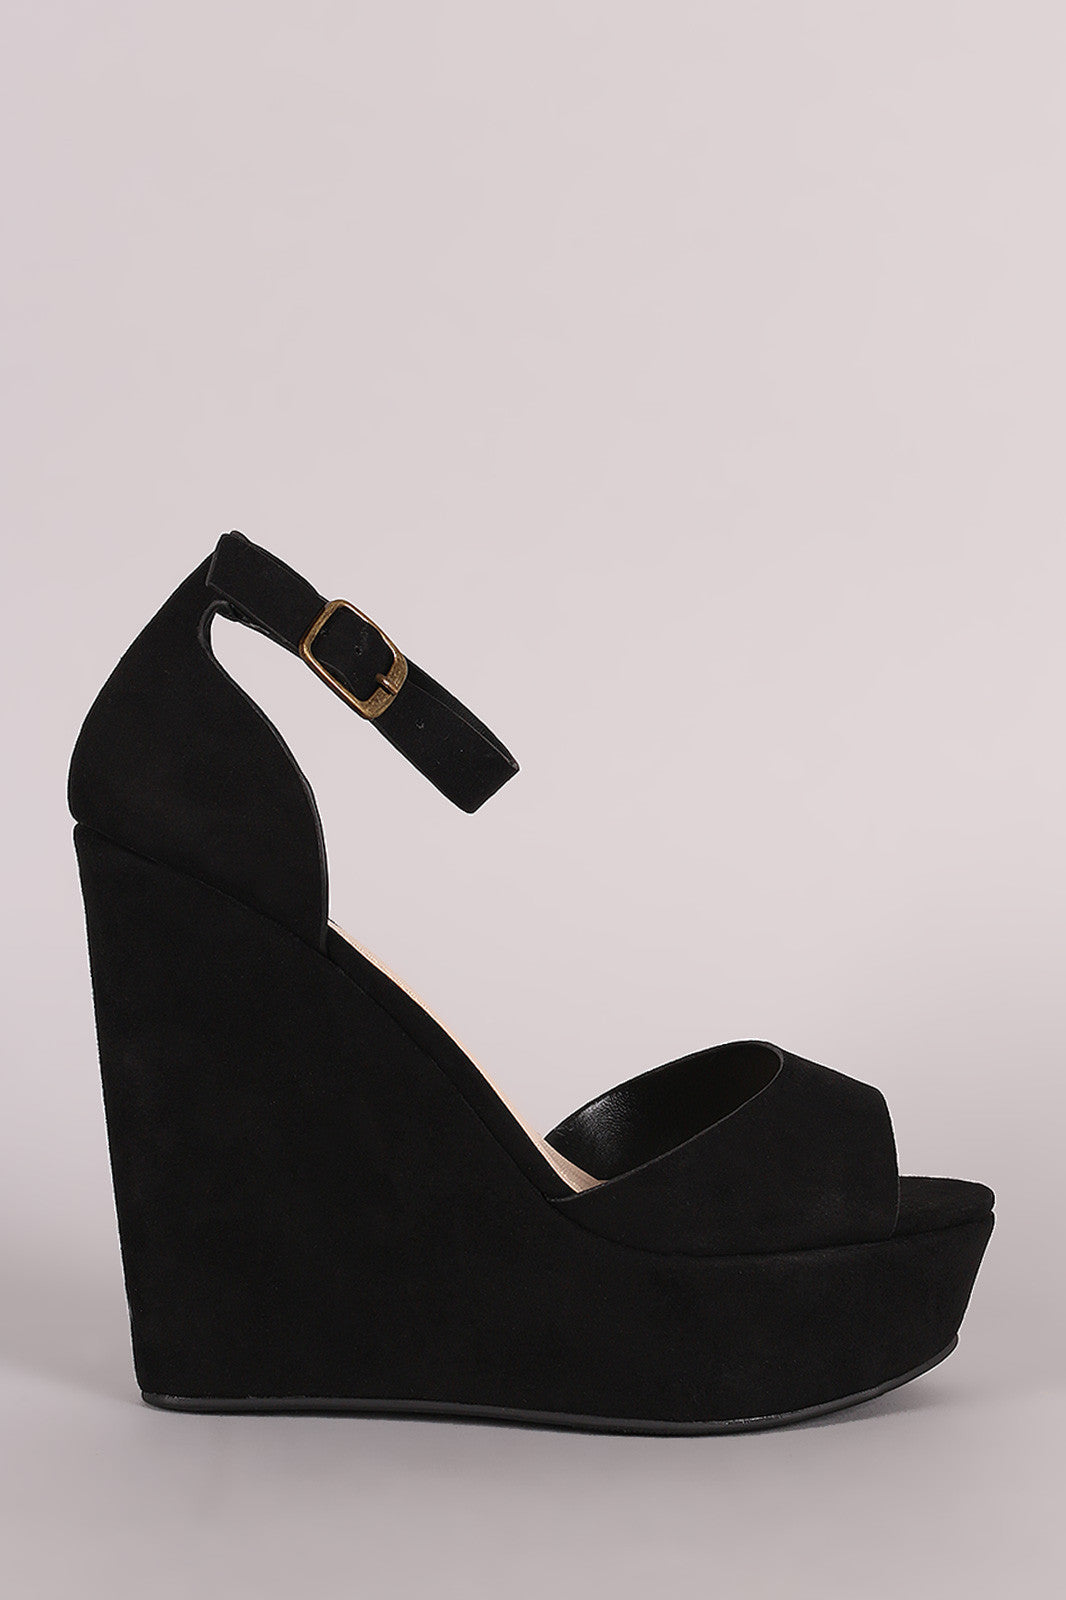 Bamboo Suede One Band Platform Wedge - Thick 'N' Curvy Shop - 7